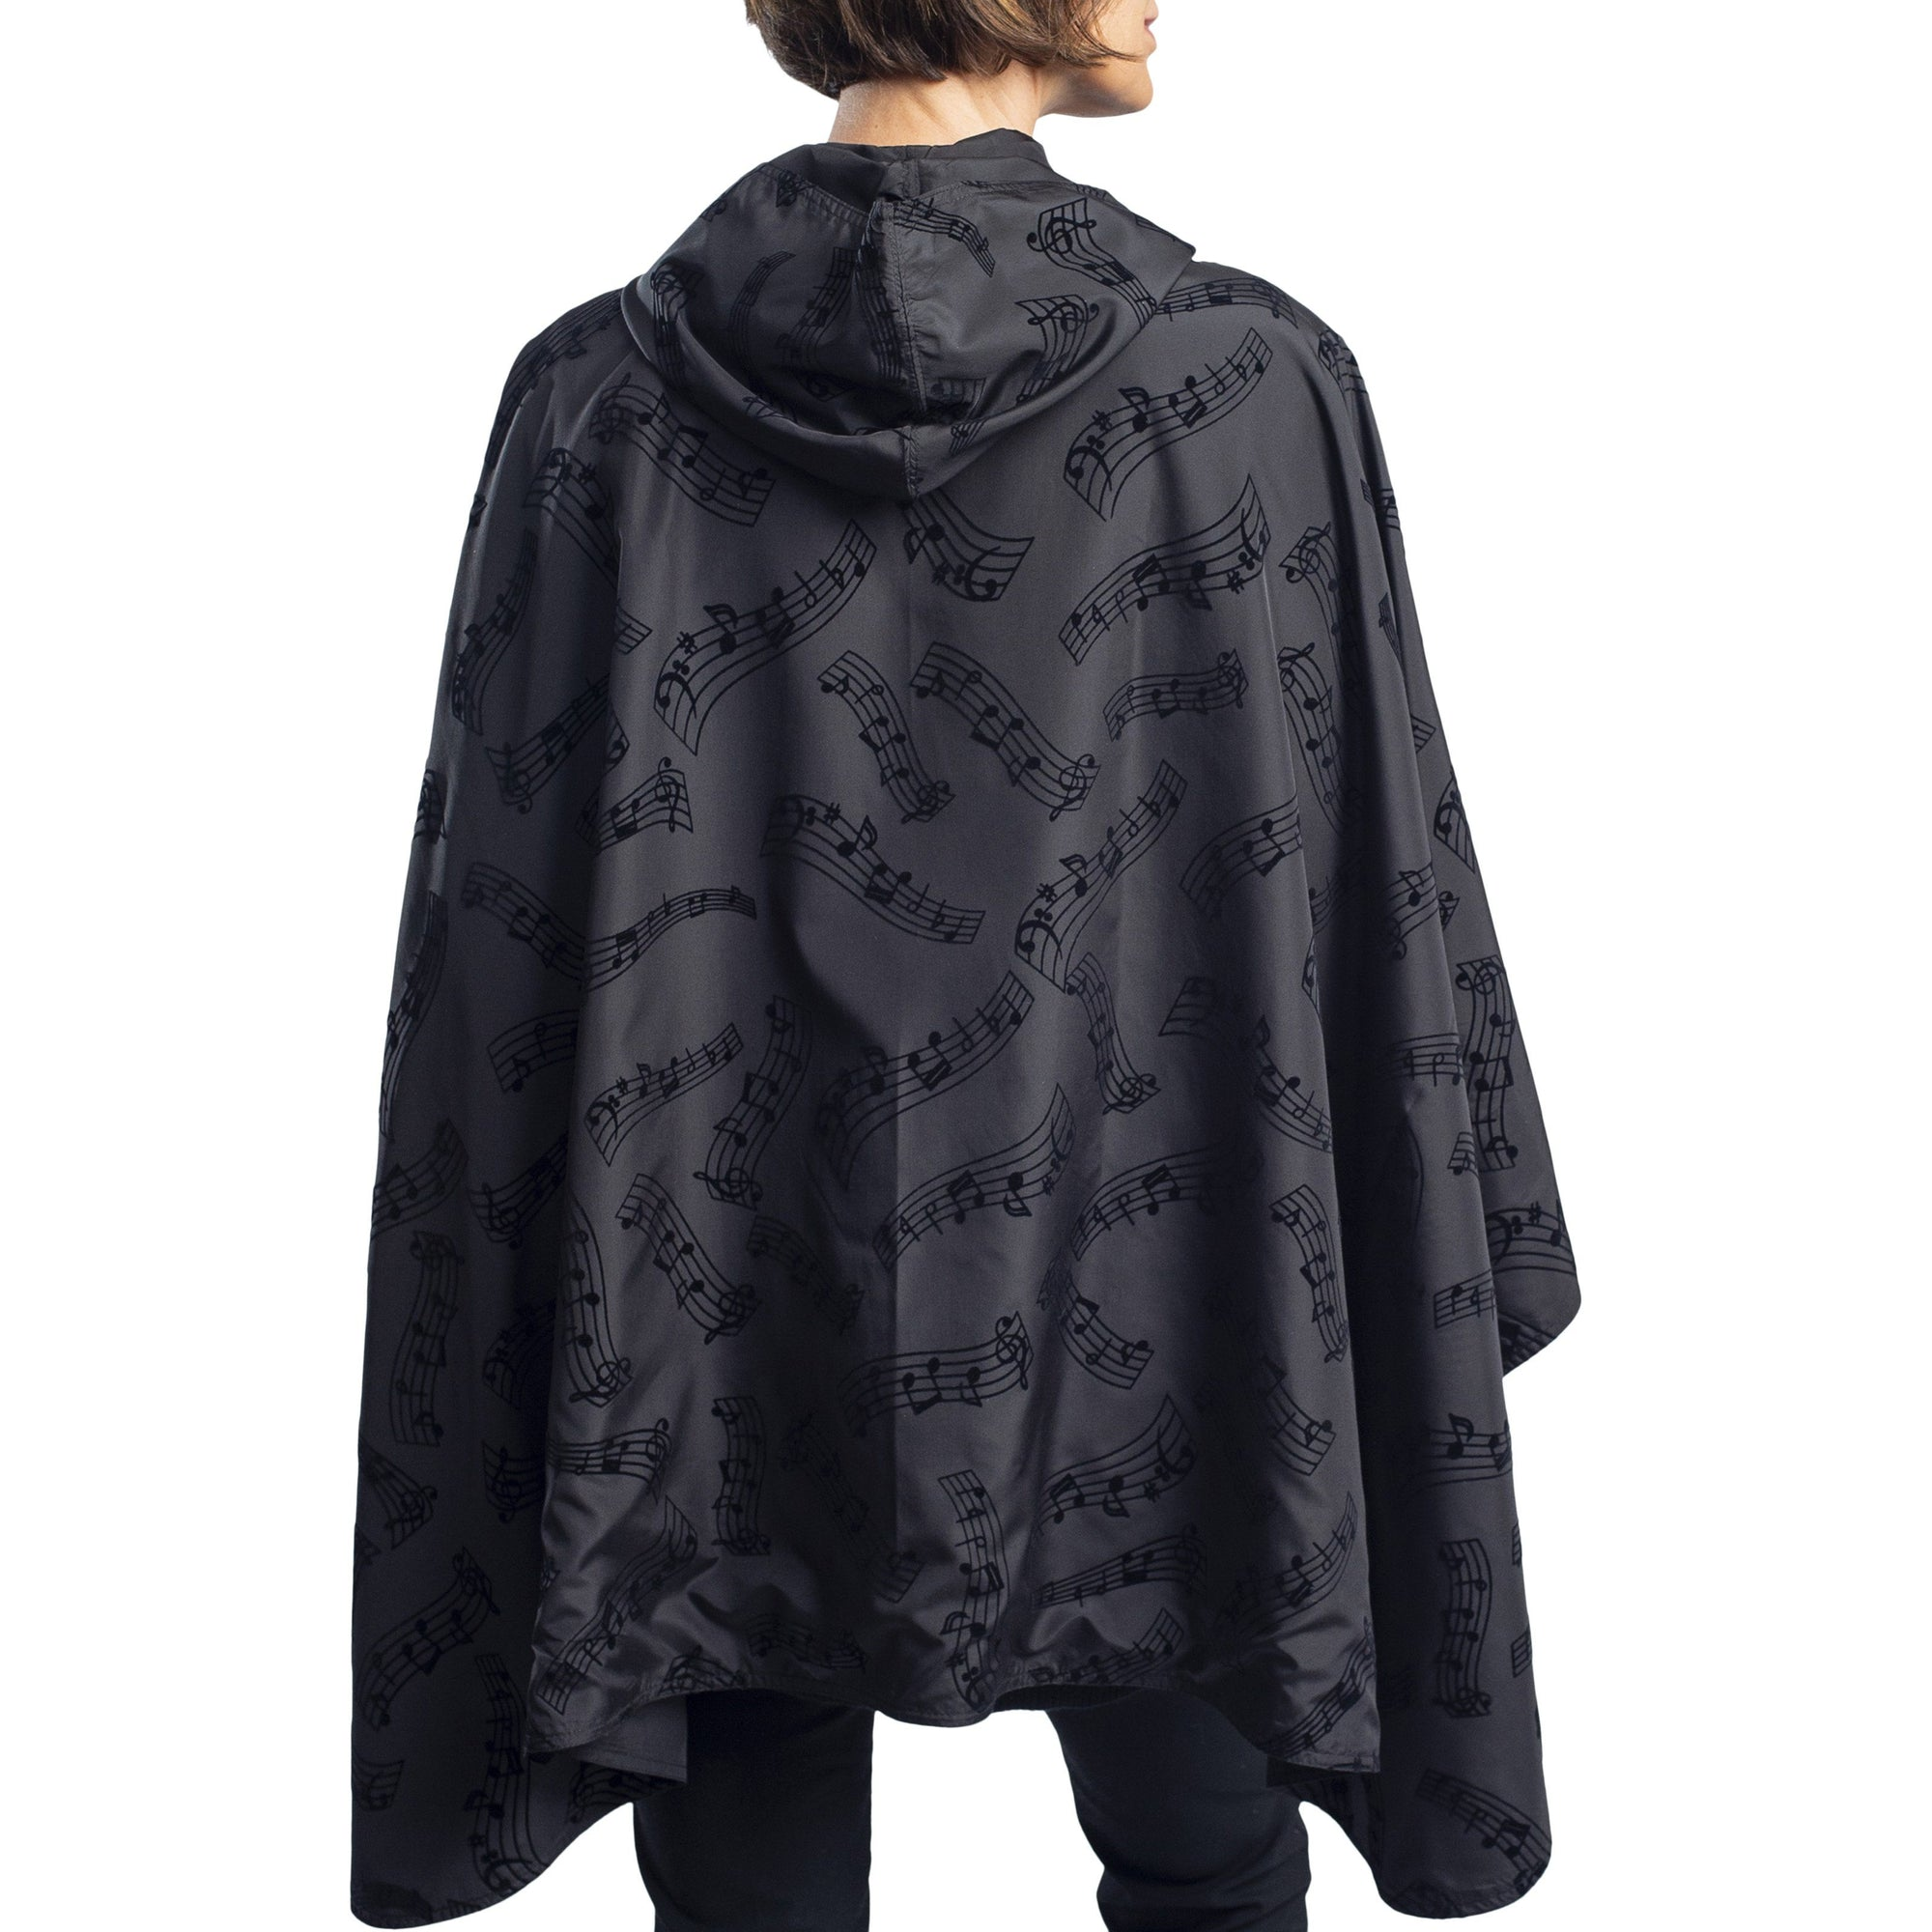 RainCaper Dressy Rain Cape - Black Velvet Symphony/Black Travel Cape